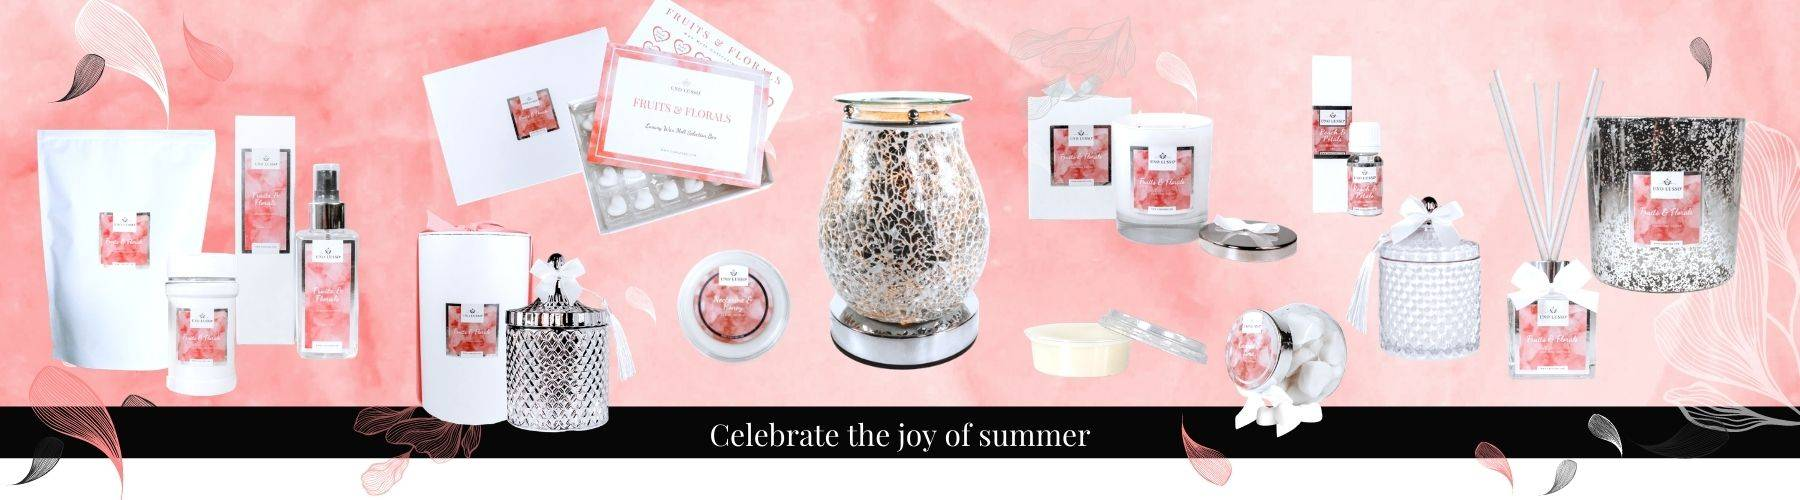 Fruits & Florals Luxury Home Fragrance Collection - Candles, Wax Melts, Room Sprays, Diffusers and more